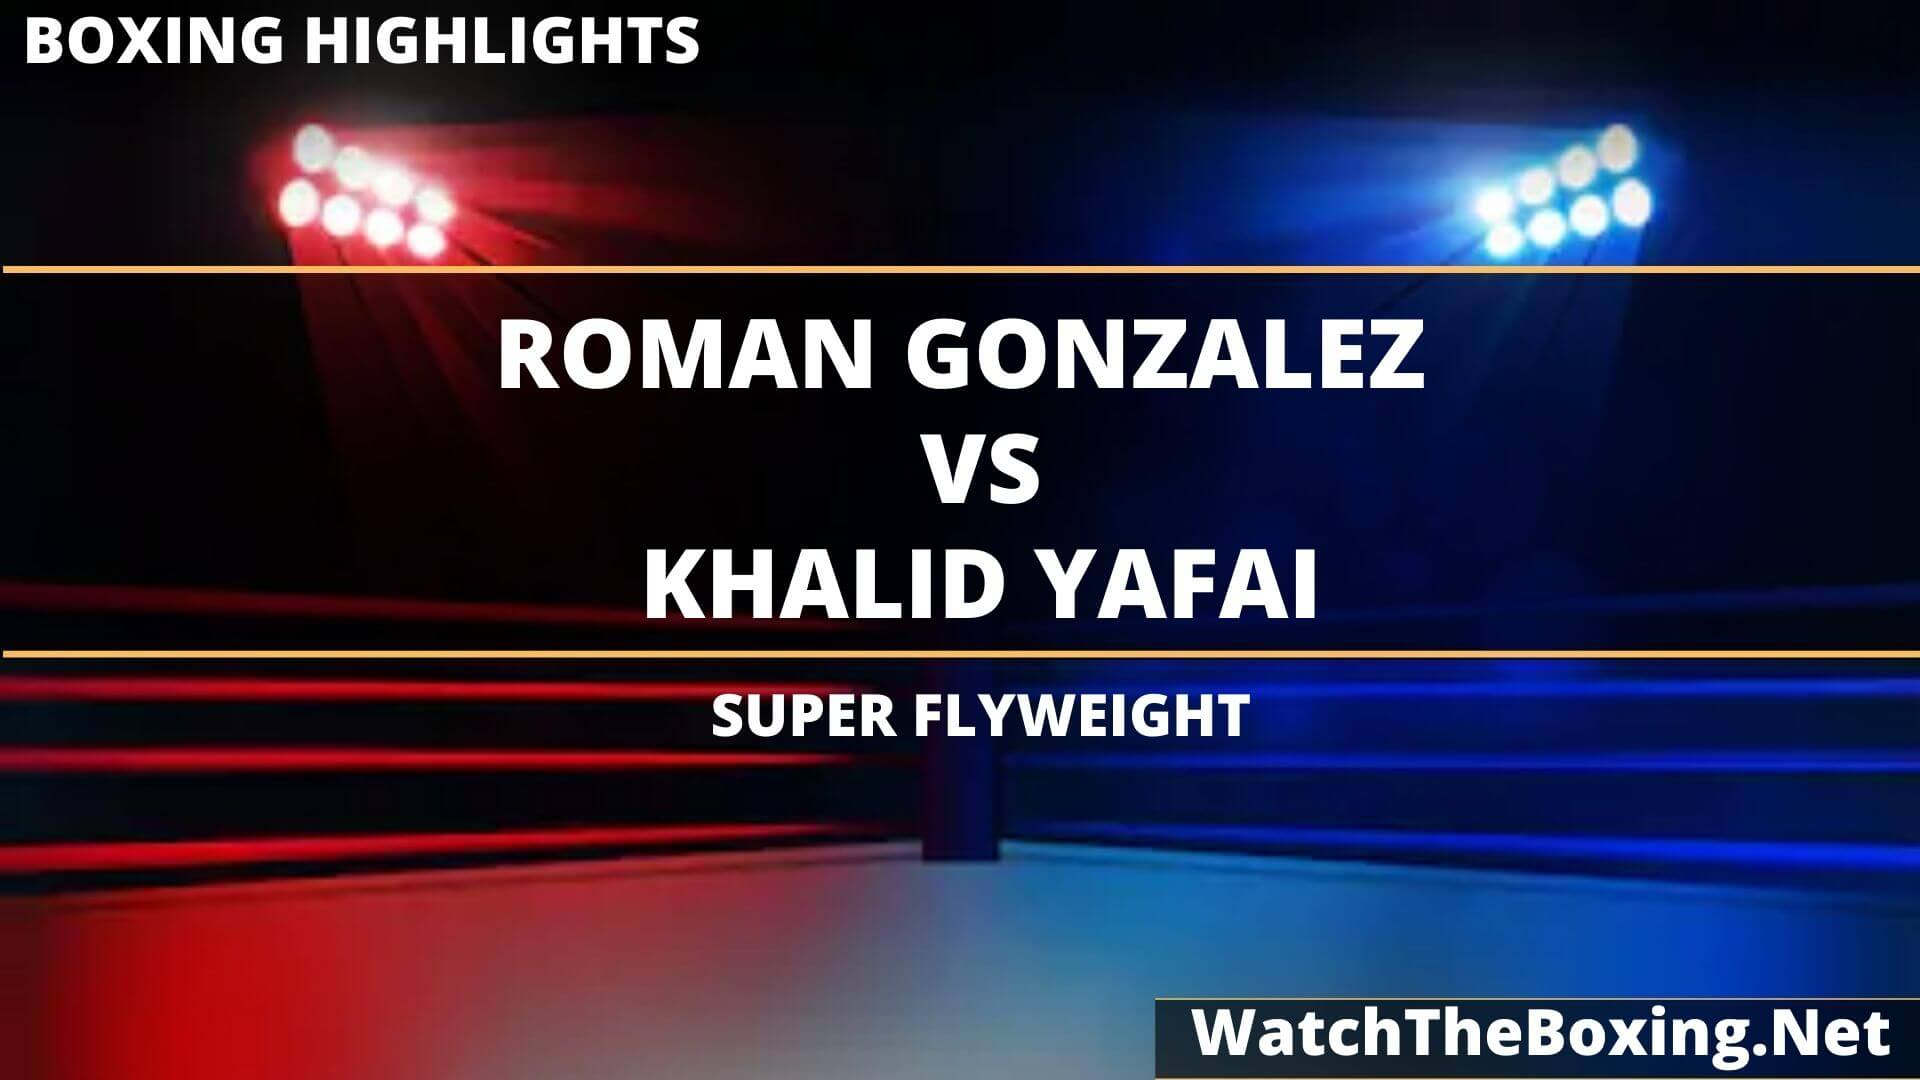 Roman Gonzalez Vs Khalid Yafai Highlights 2020